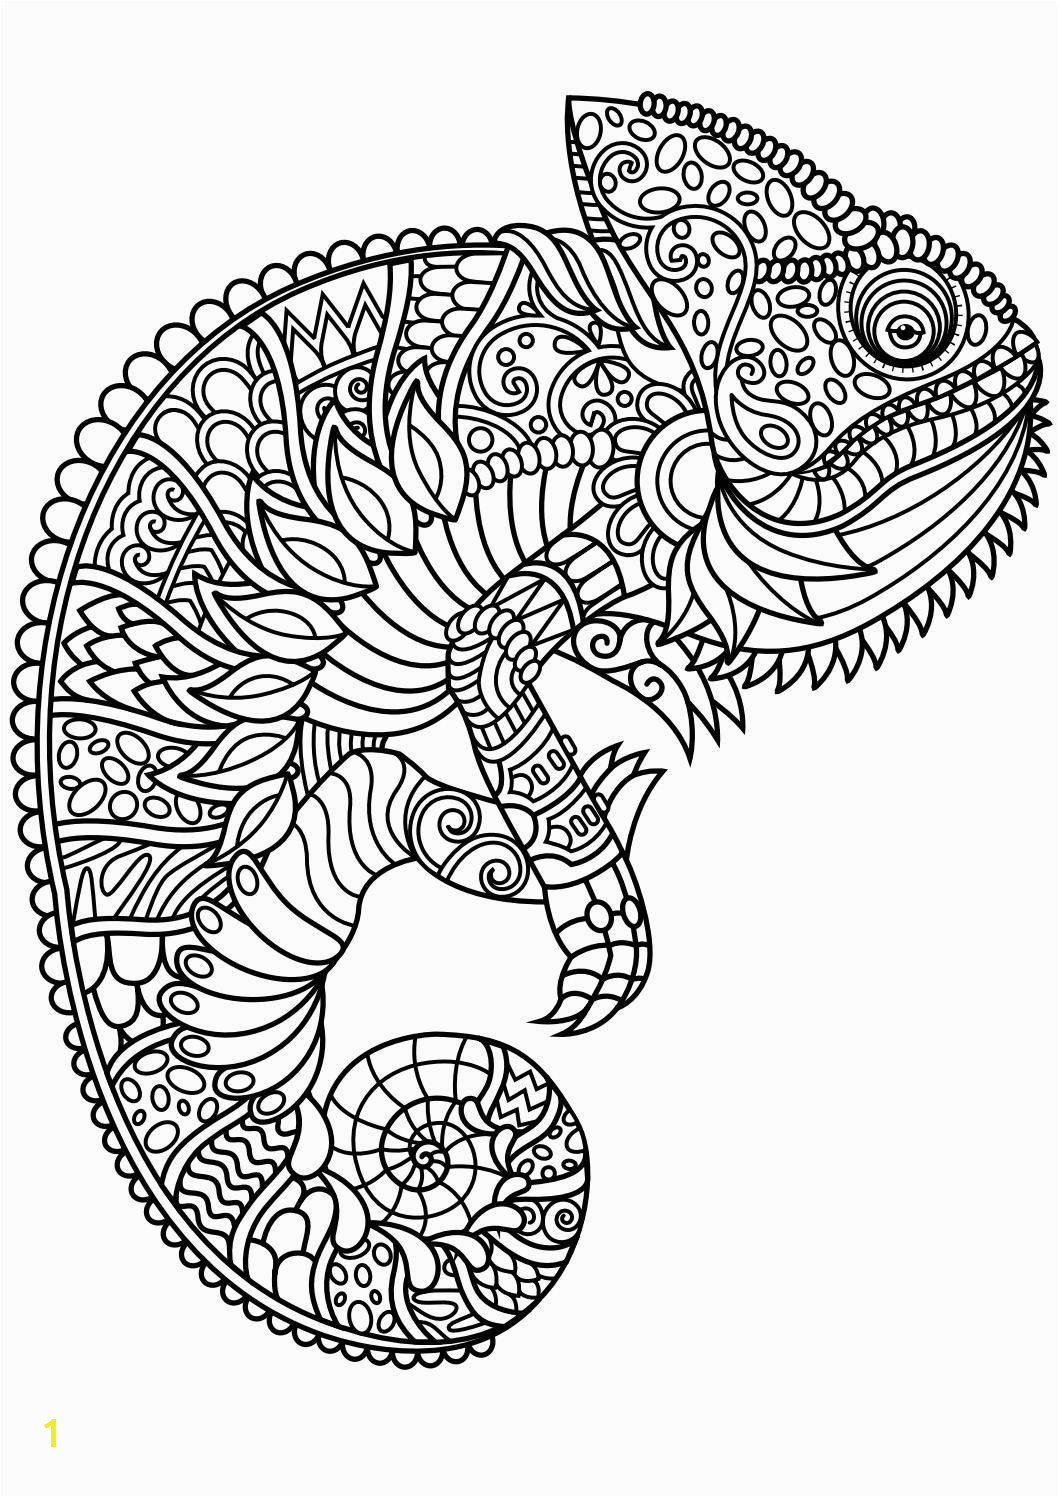 Animal coloring pages pdf Animal Coloring Pages is a free adult coloring book with 20 different animal pictures to color horse coloring pages dog cat